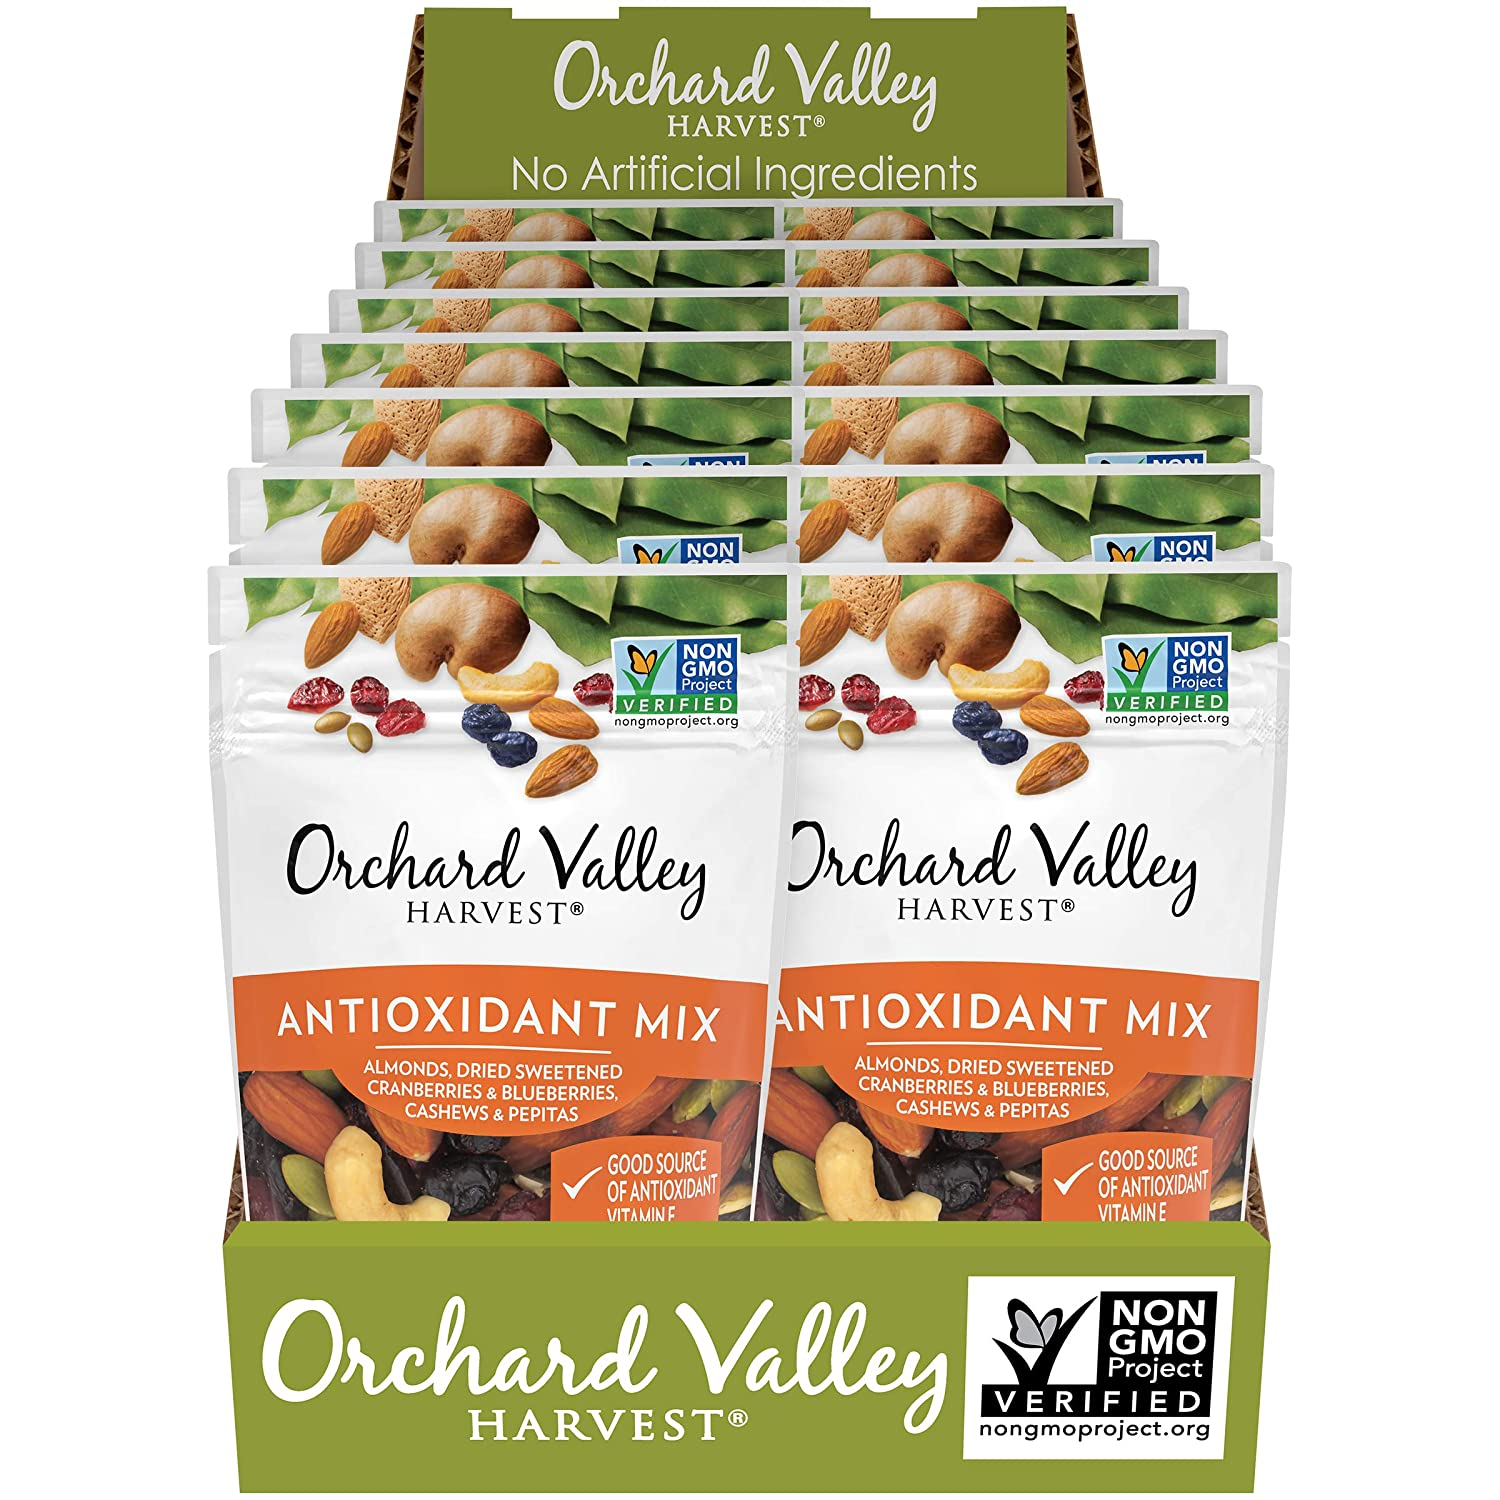 Orchard Valley Harvest Antioxidant Mix Orchard Valley Harvest Antioxidant Mix 2 Oz-14 Count